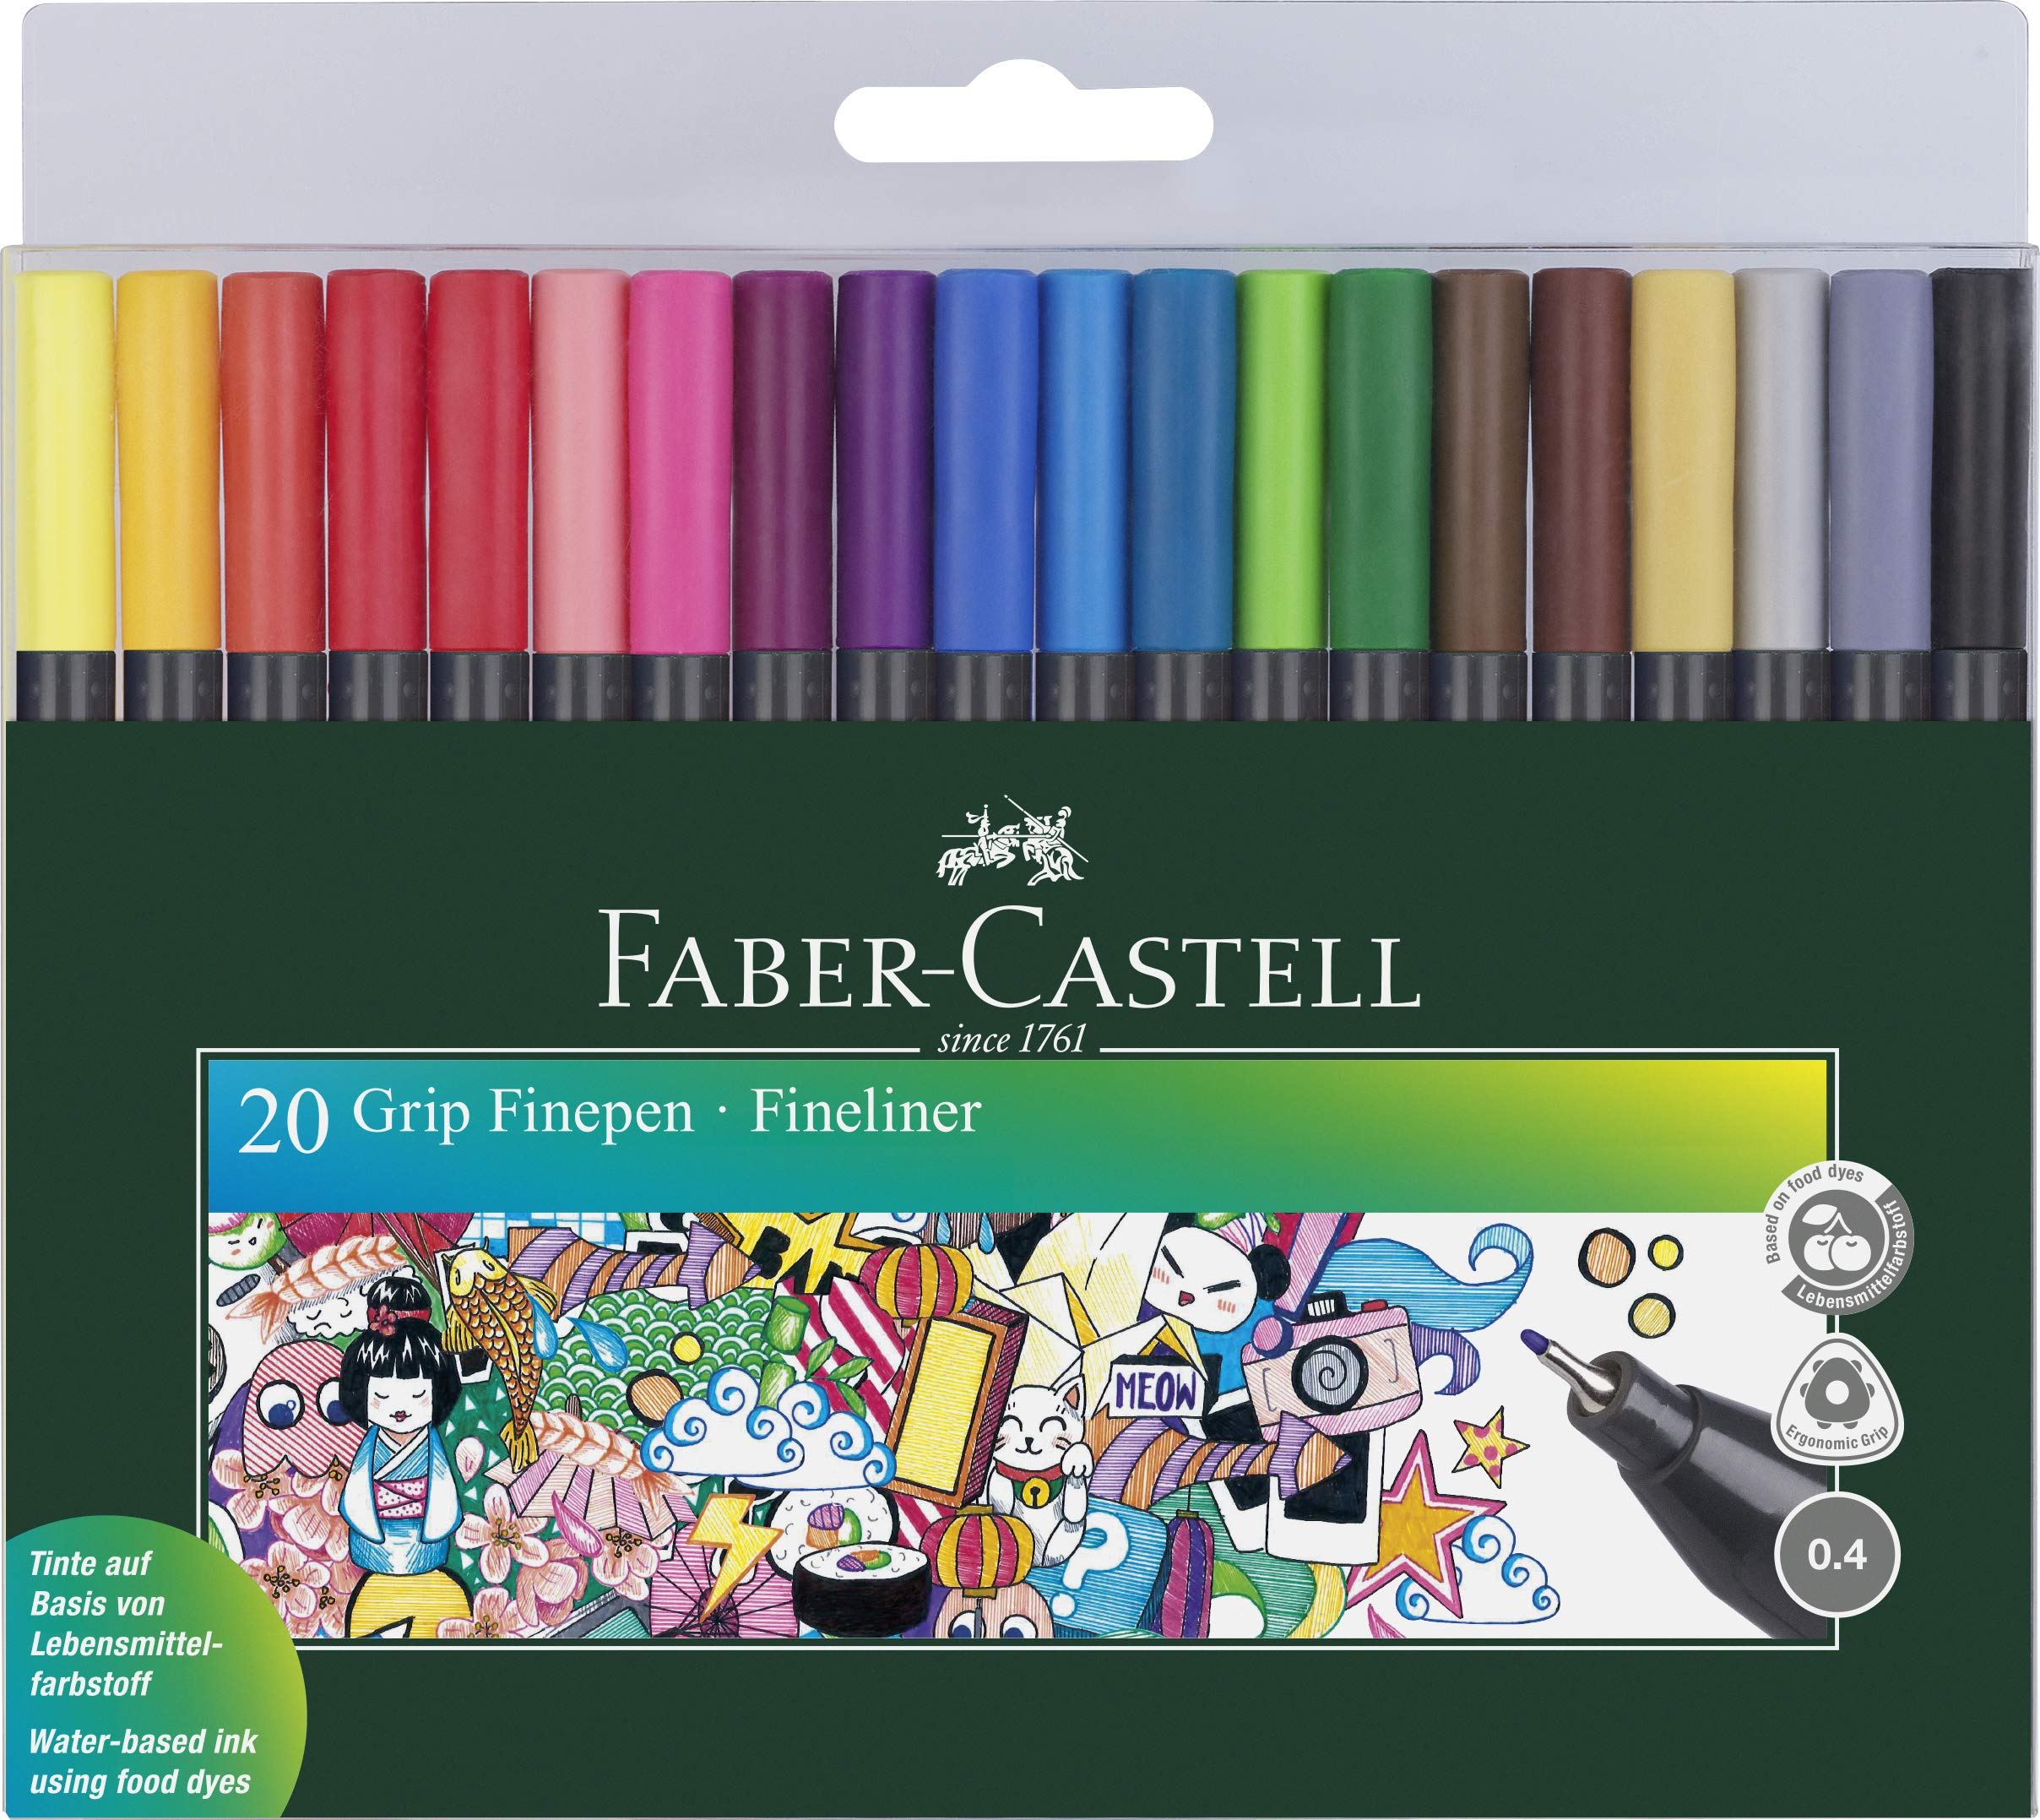 Faber-Castell Grip Finepen (Wallet of 20)